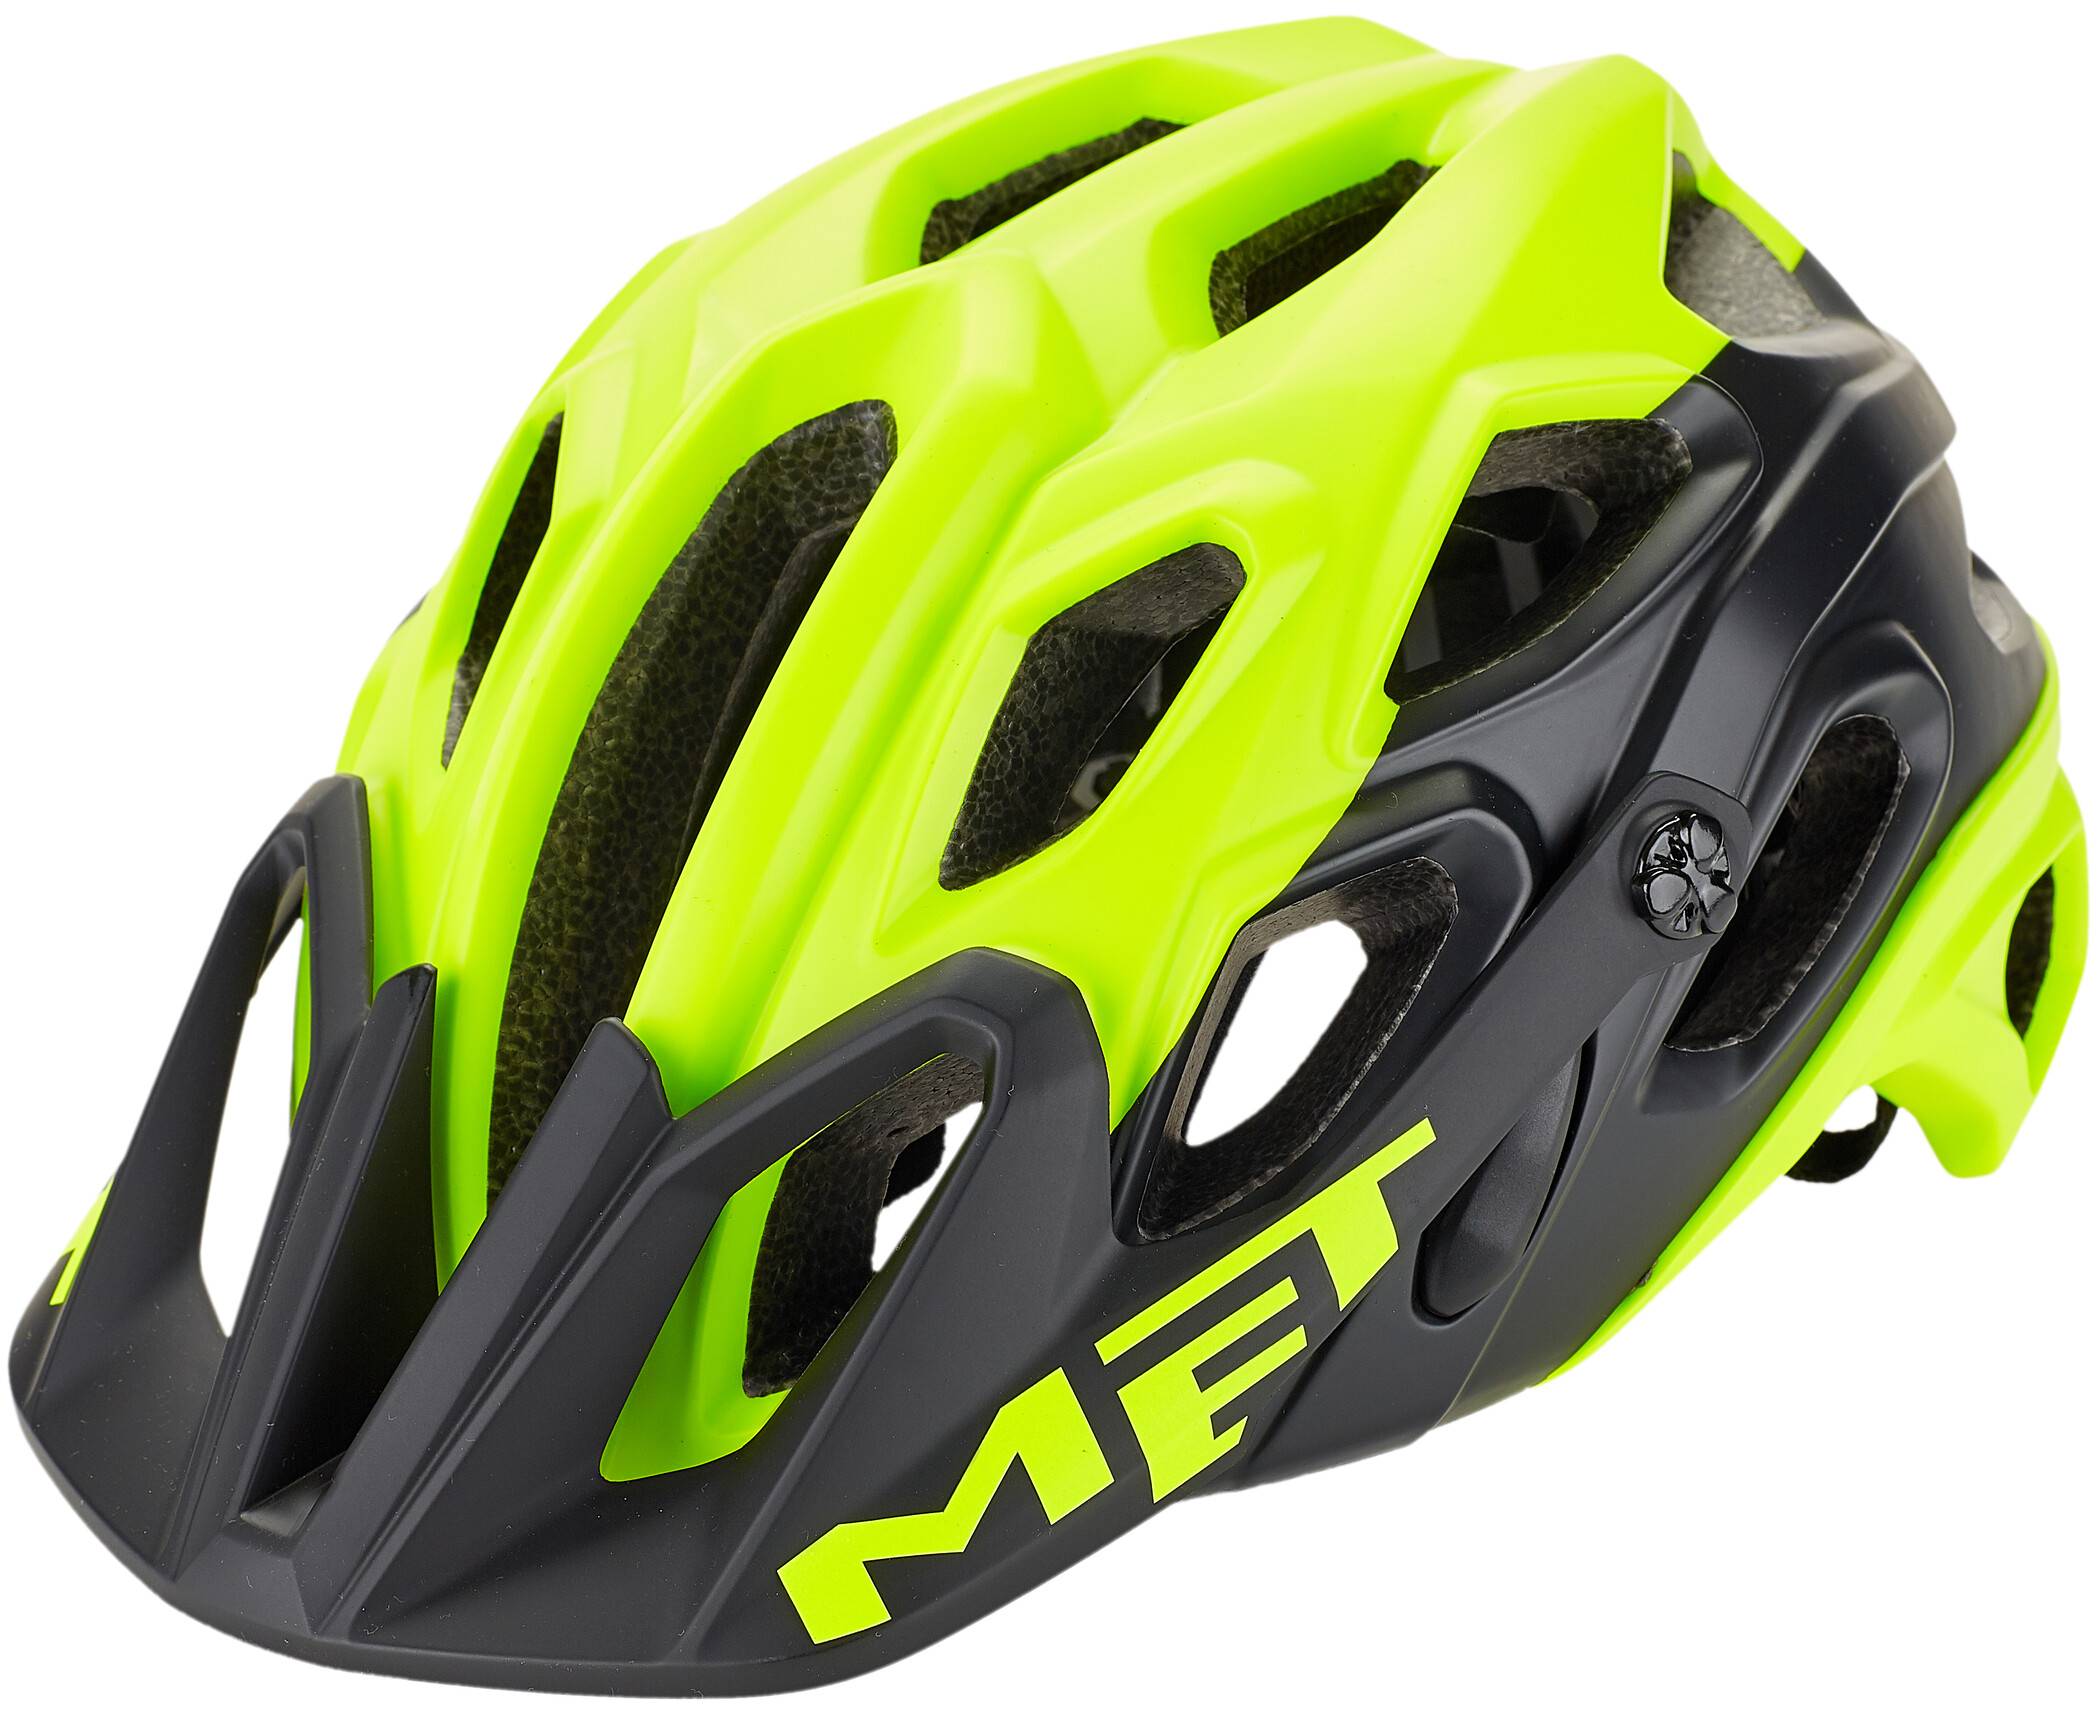 MET Lupo Cykelhjelm, matt safety yellow/black (2019) | Helmets